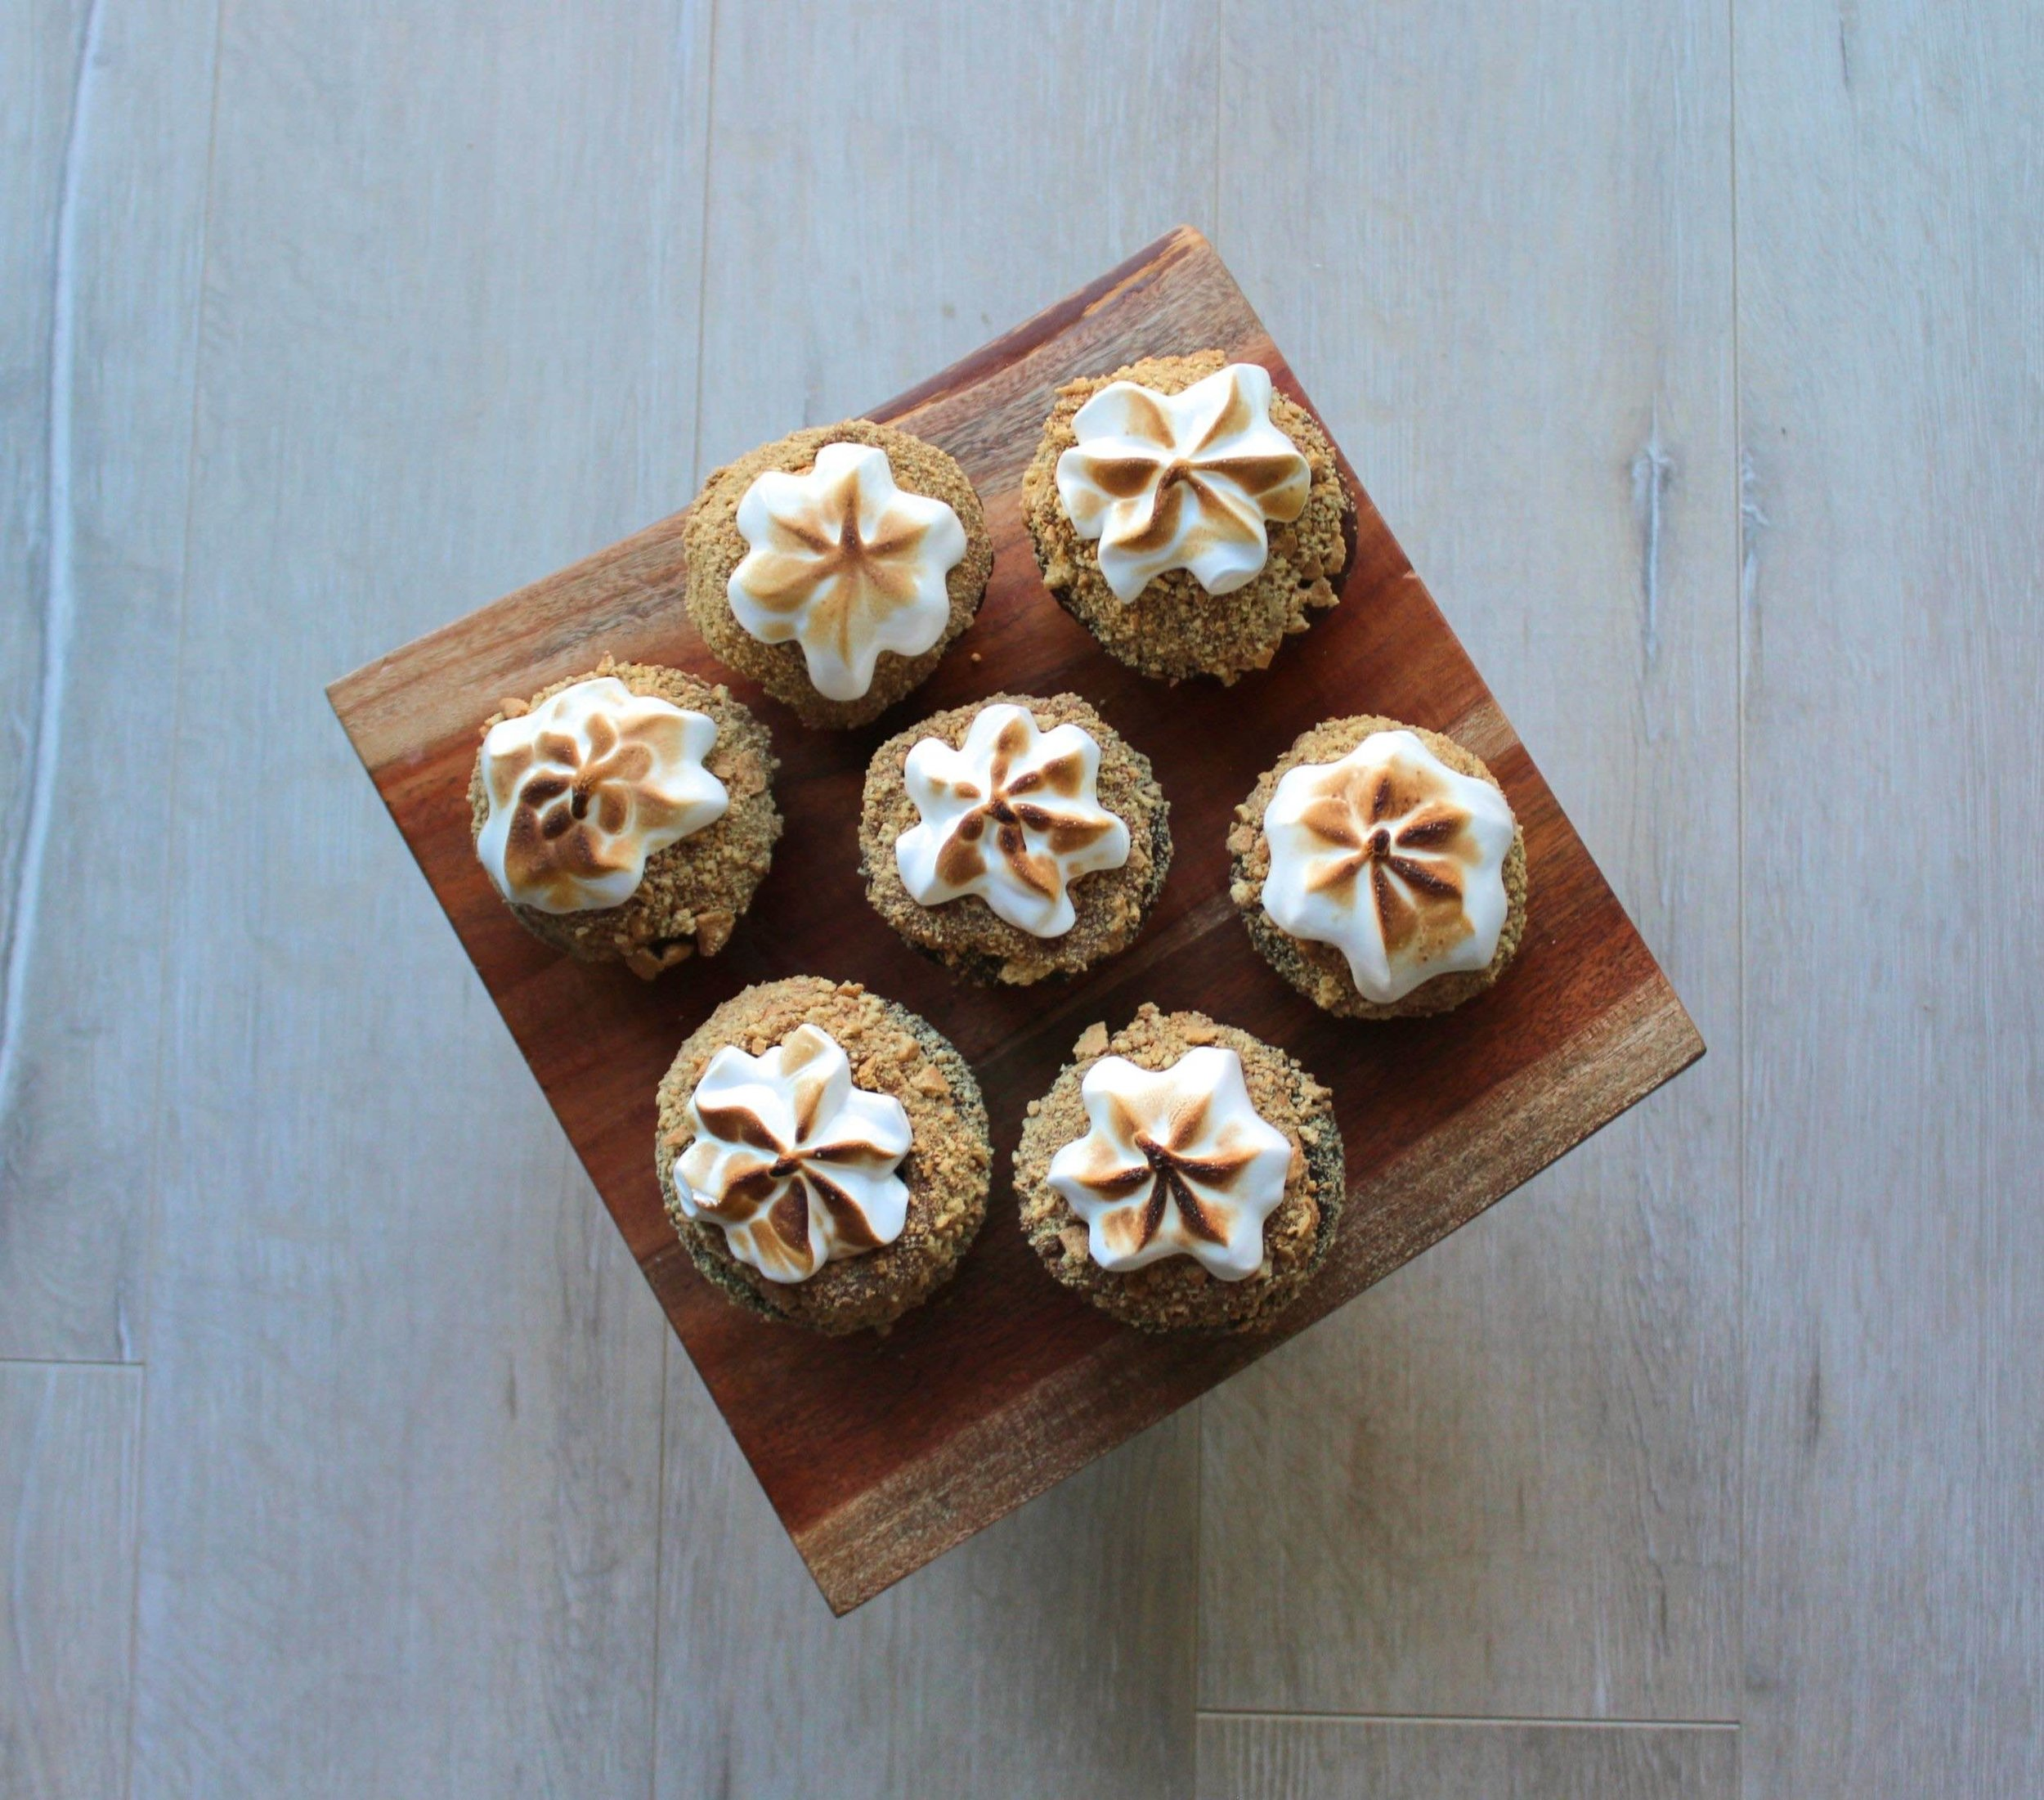 S'more Cupcakes: Chocolate Cupcakes with graham crackers crumbs and meringue frosting